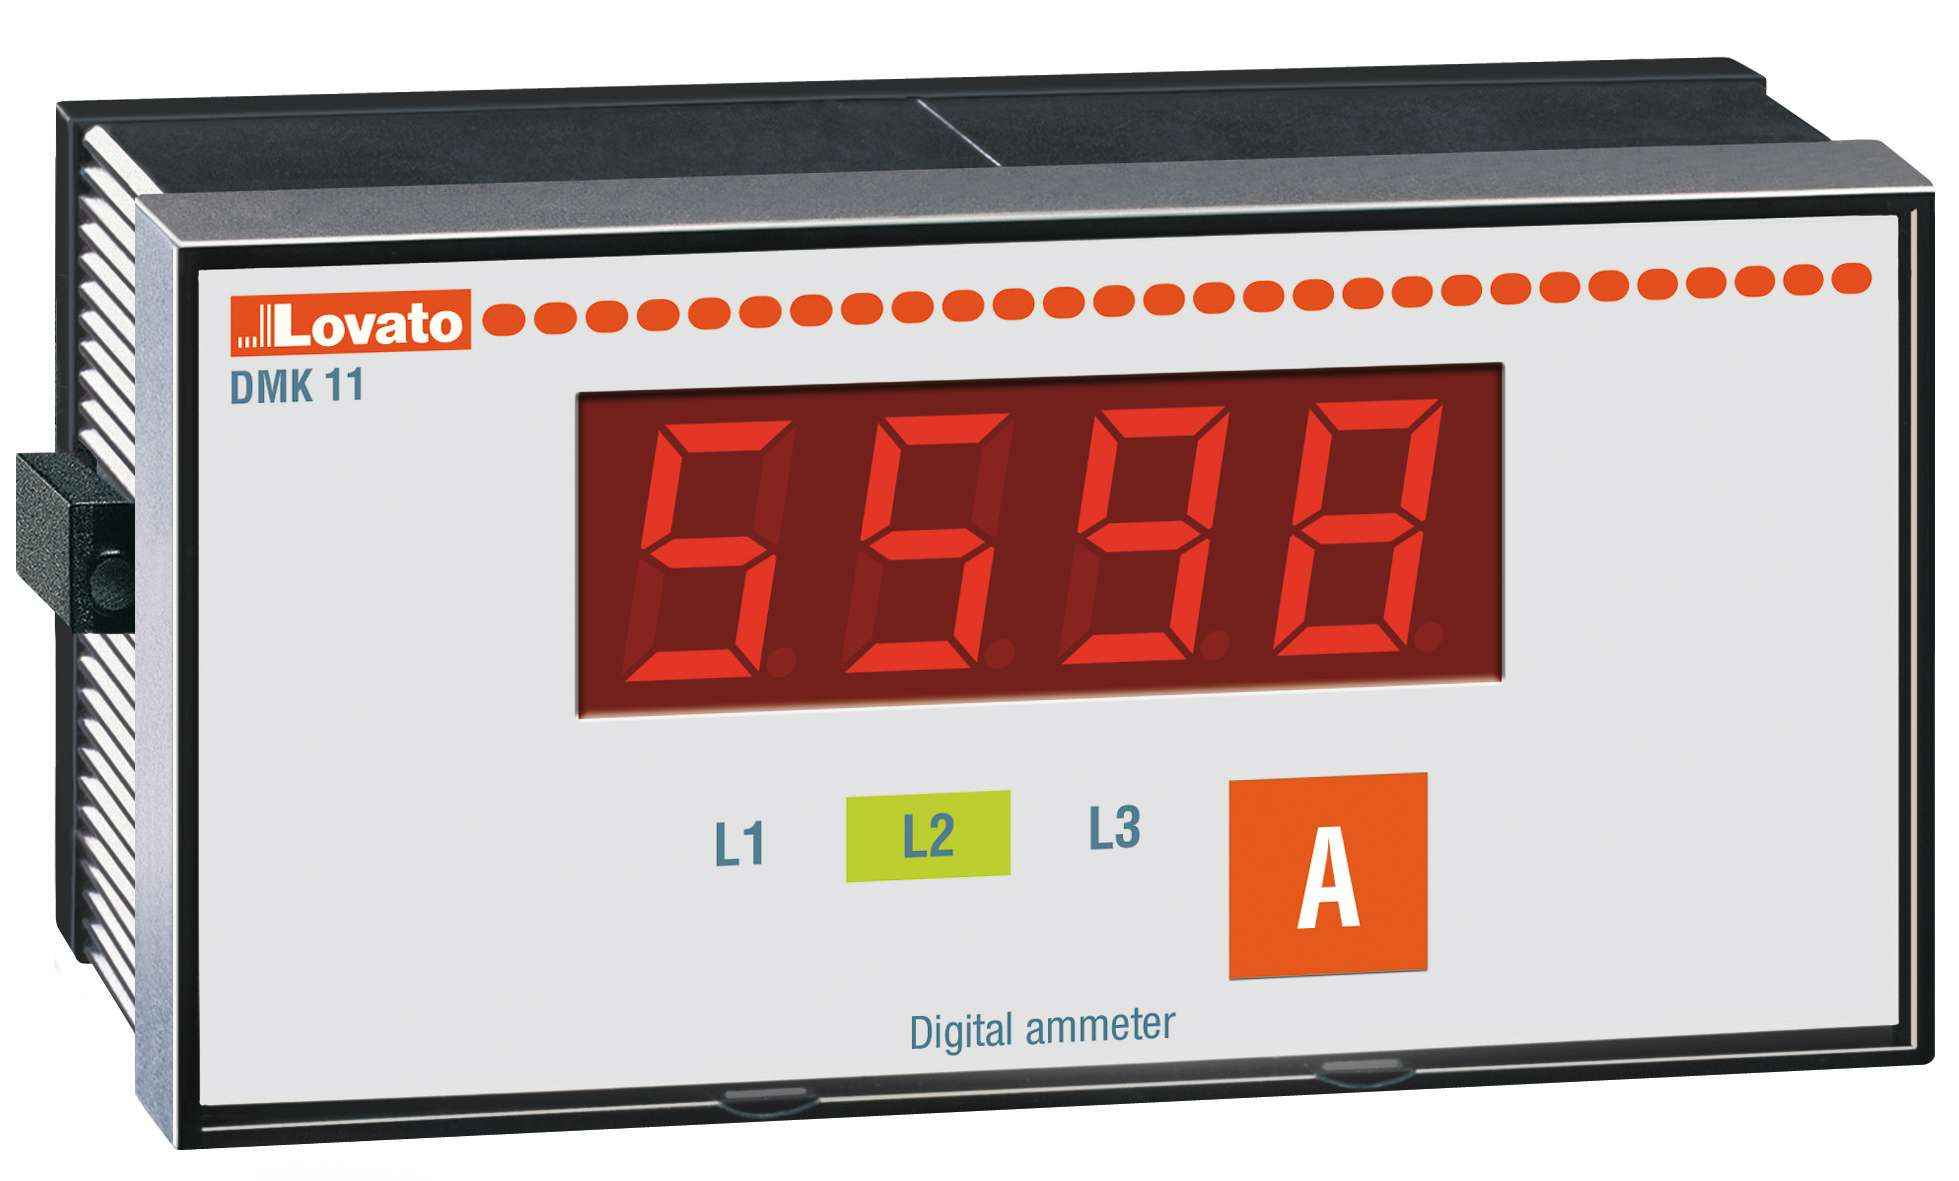 DMK 1... Digital Measuring Instruments